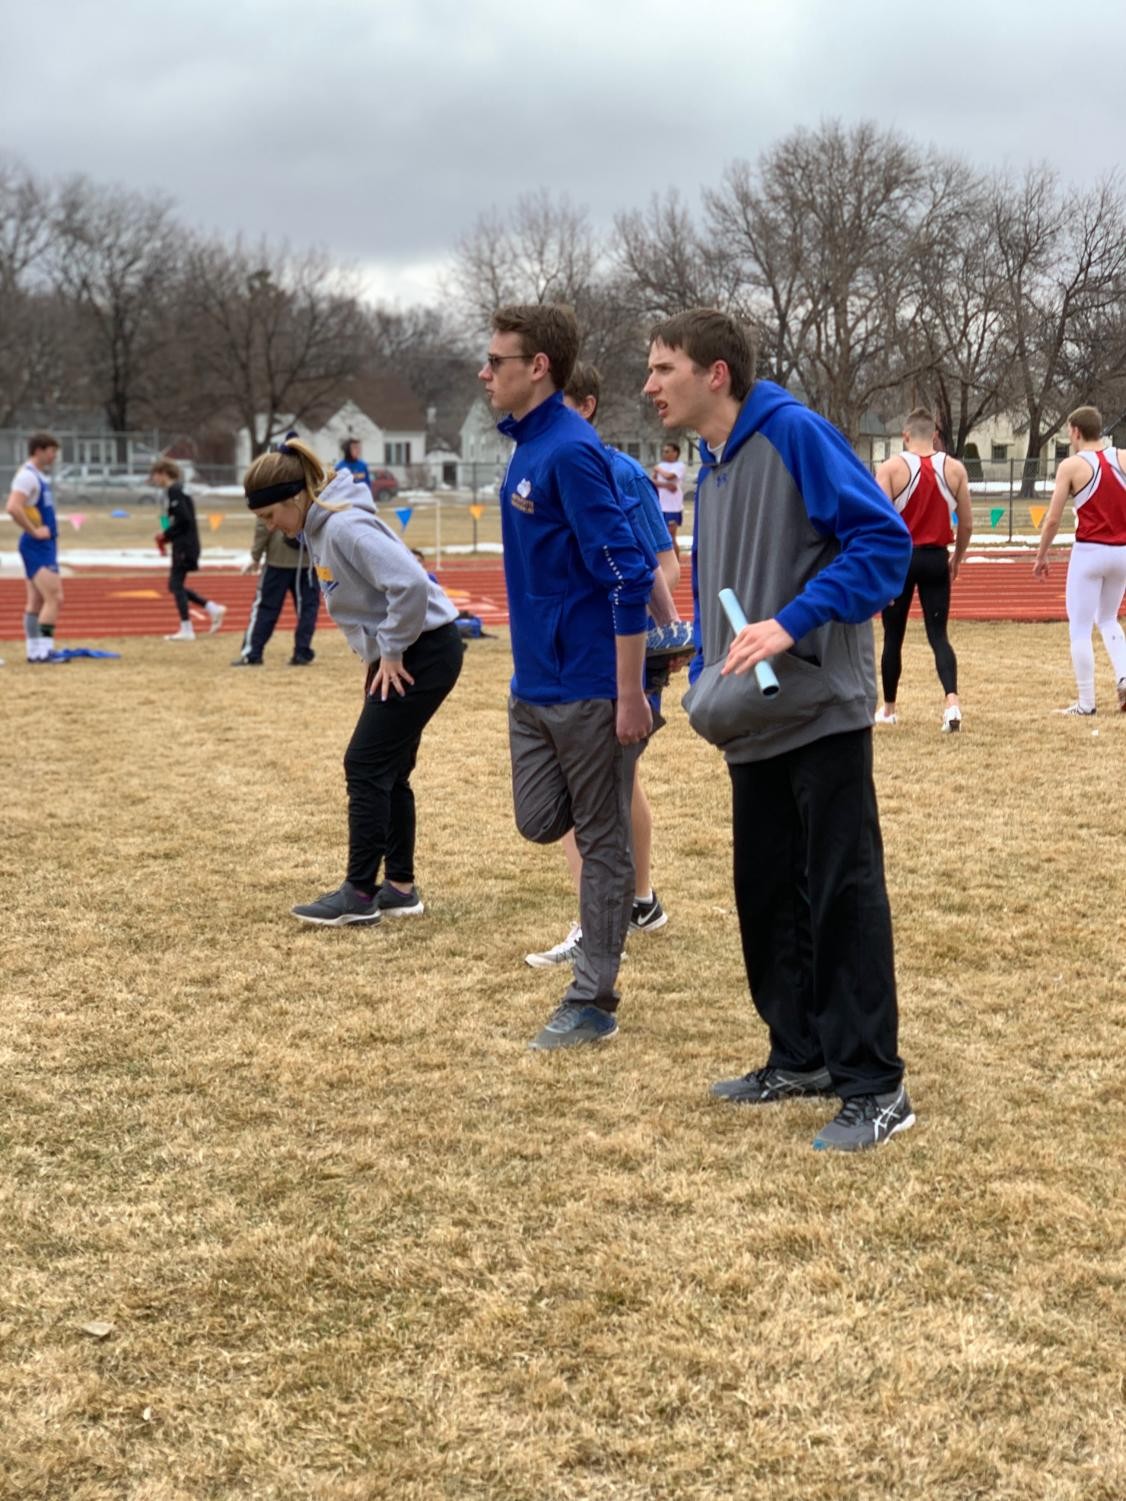 Seniors Nathan Franz and Jared Gies and sophomore Shelby Yoshida warm up before a race, at their first meet in Scottsbluff on Saturday, March 23. The three of them also participated in Unified Bowling in the fall. Photo courtesy of Nathan Franz.